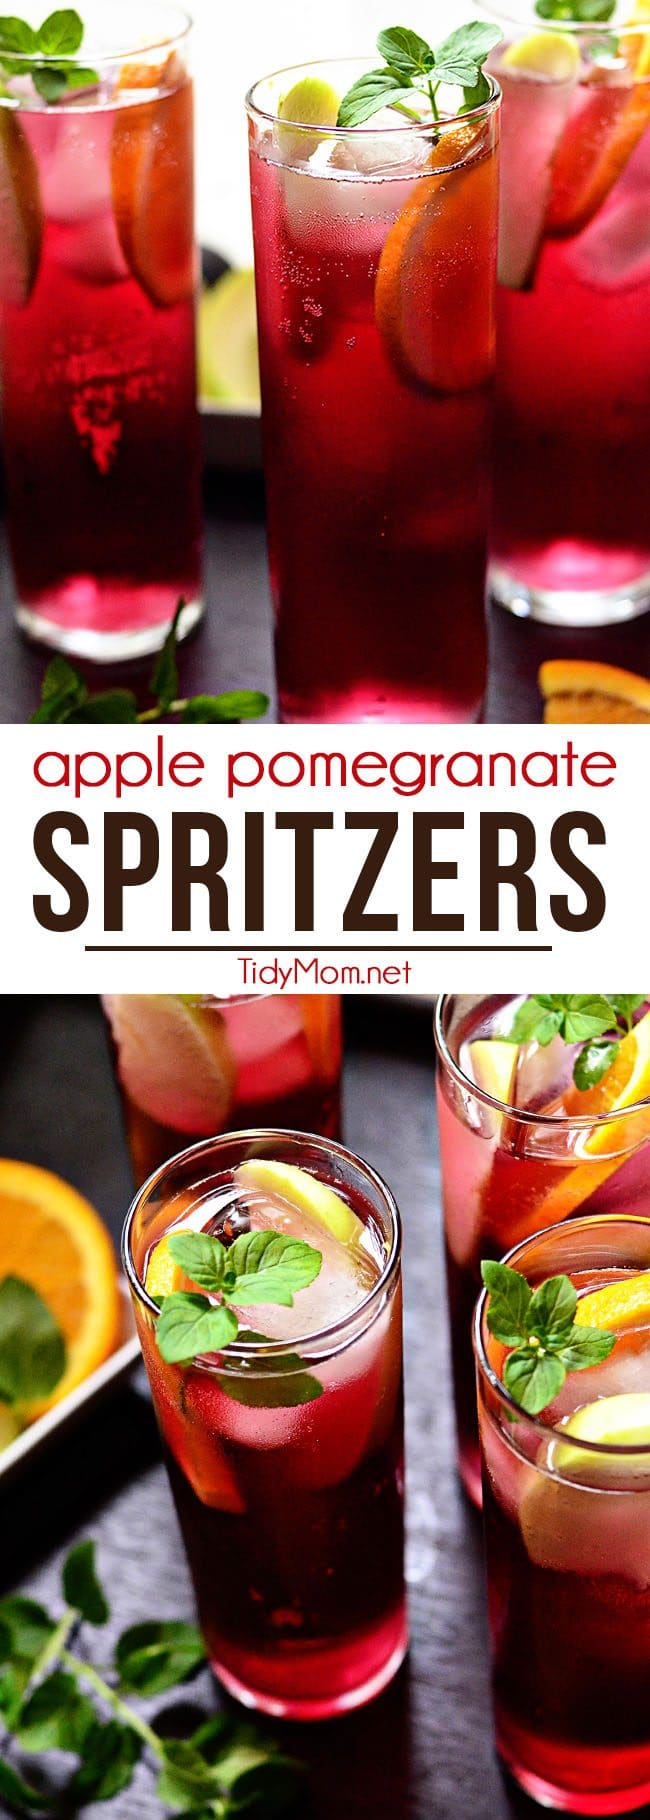 Apple Pomegranate Spritzers are fizzy, fruity and full of antioxidants (hello pomegranate!) and non-alcoholic. You could swap out the lemon-lime soda for white wine if you'd prefer a boozy version. Perfect for any occasion! Print simple and refreshing cocktail recipe at TidyMom.net